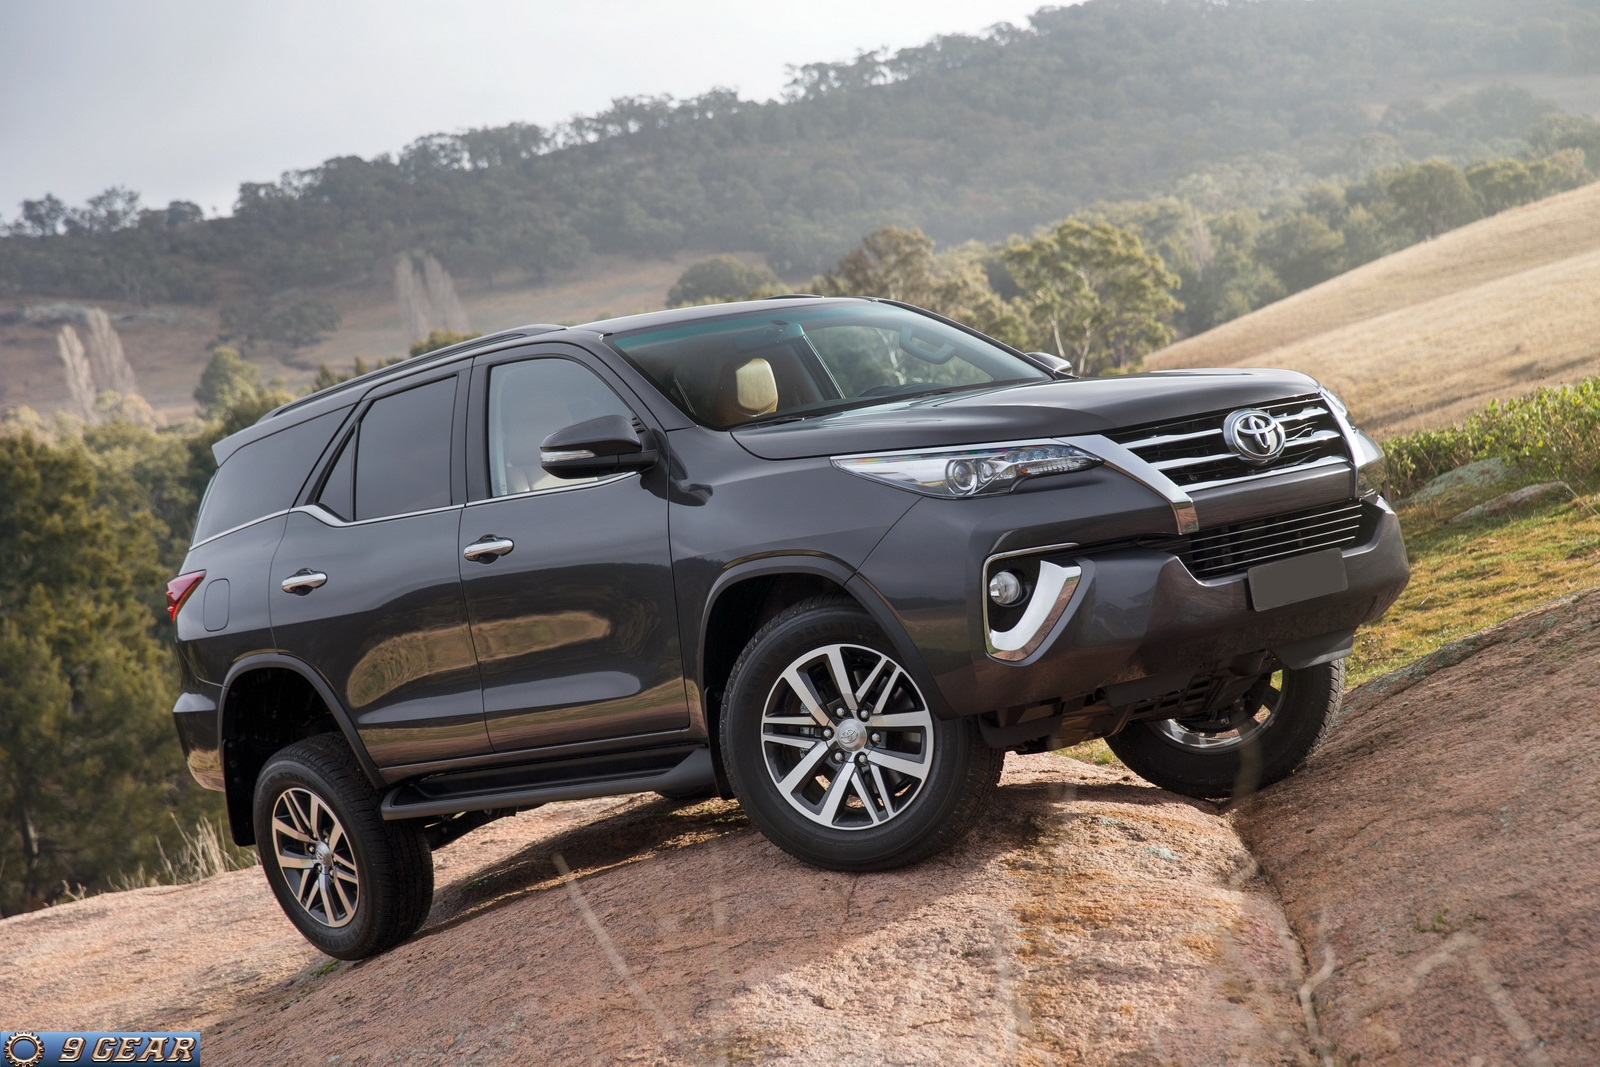 car reviews new car pictures for 2018 2019 2016 toyota fortuner suv revealed. Black Bedroom Furniture Sets. Home Design Ideas